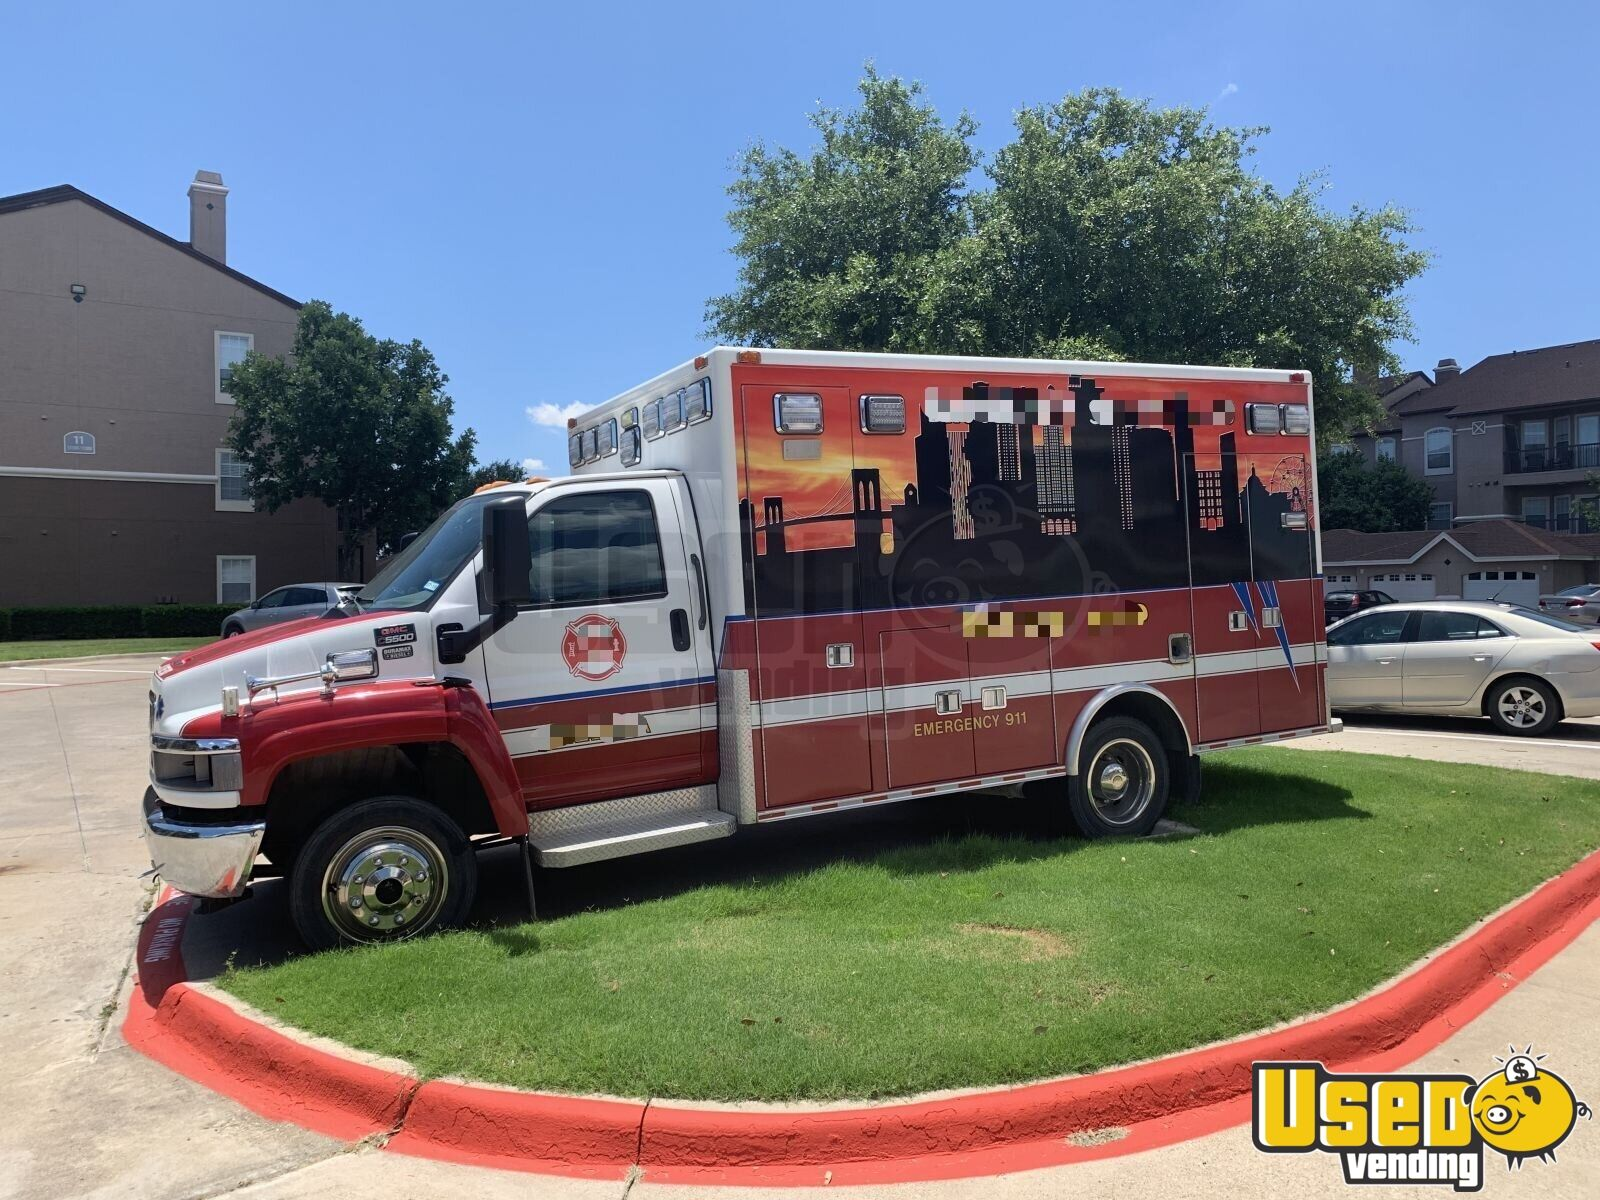 2002 Gmc All-purpose Food Truck Air Conditioning Texas Diesel Engine for Sale - 2